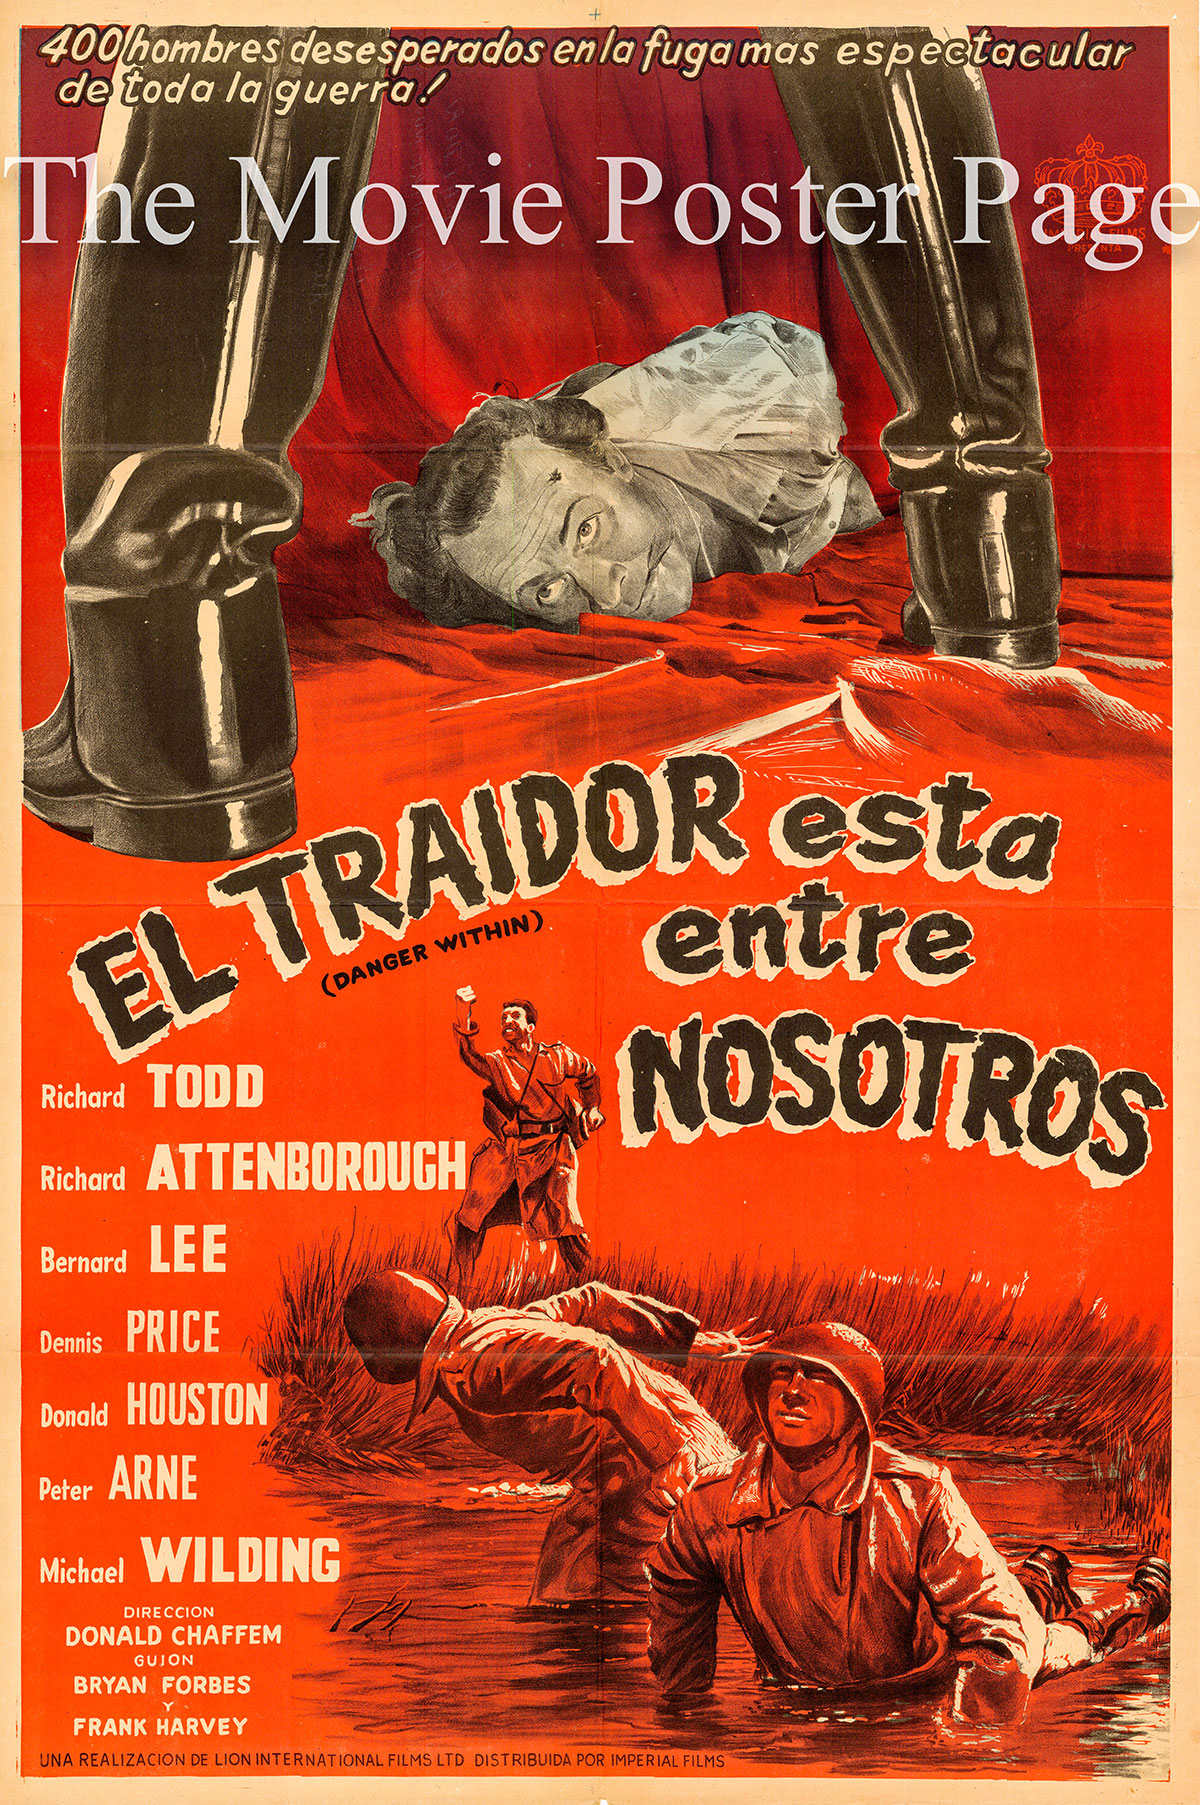 Pictured is an Argentine one-sheet poster forthe 1959 Don Chaffey film Danger Within starring Richard Todd.